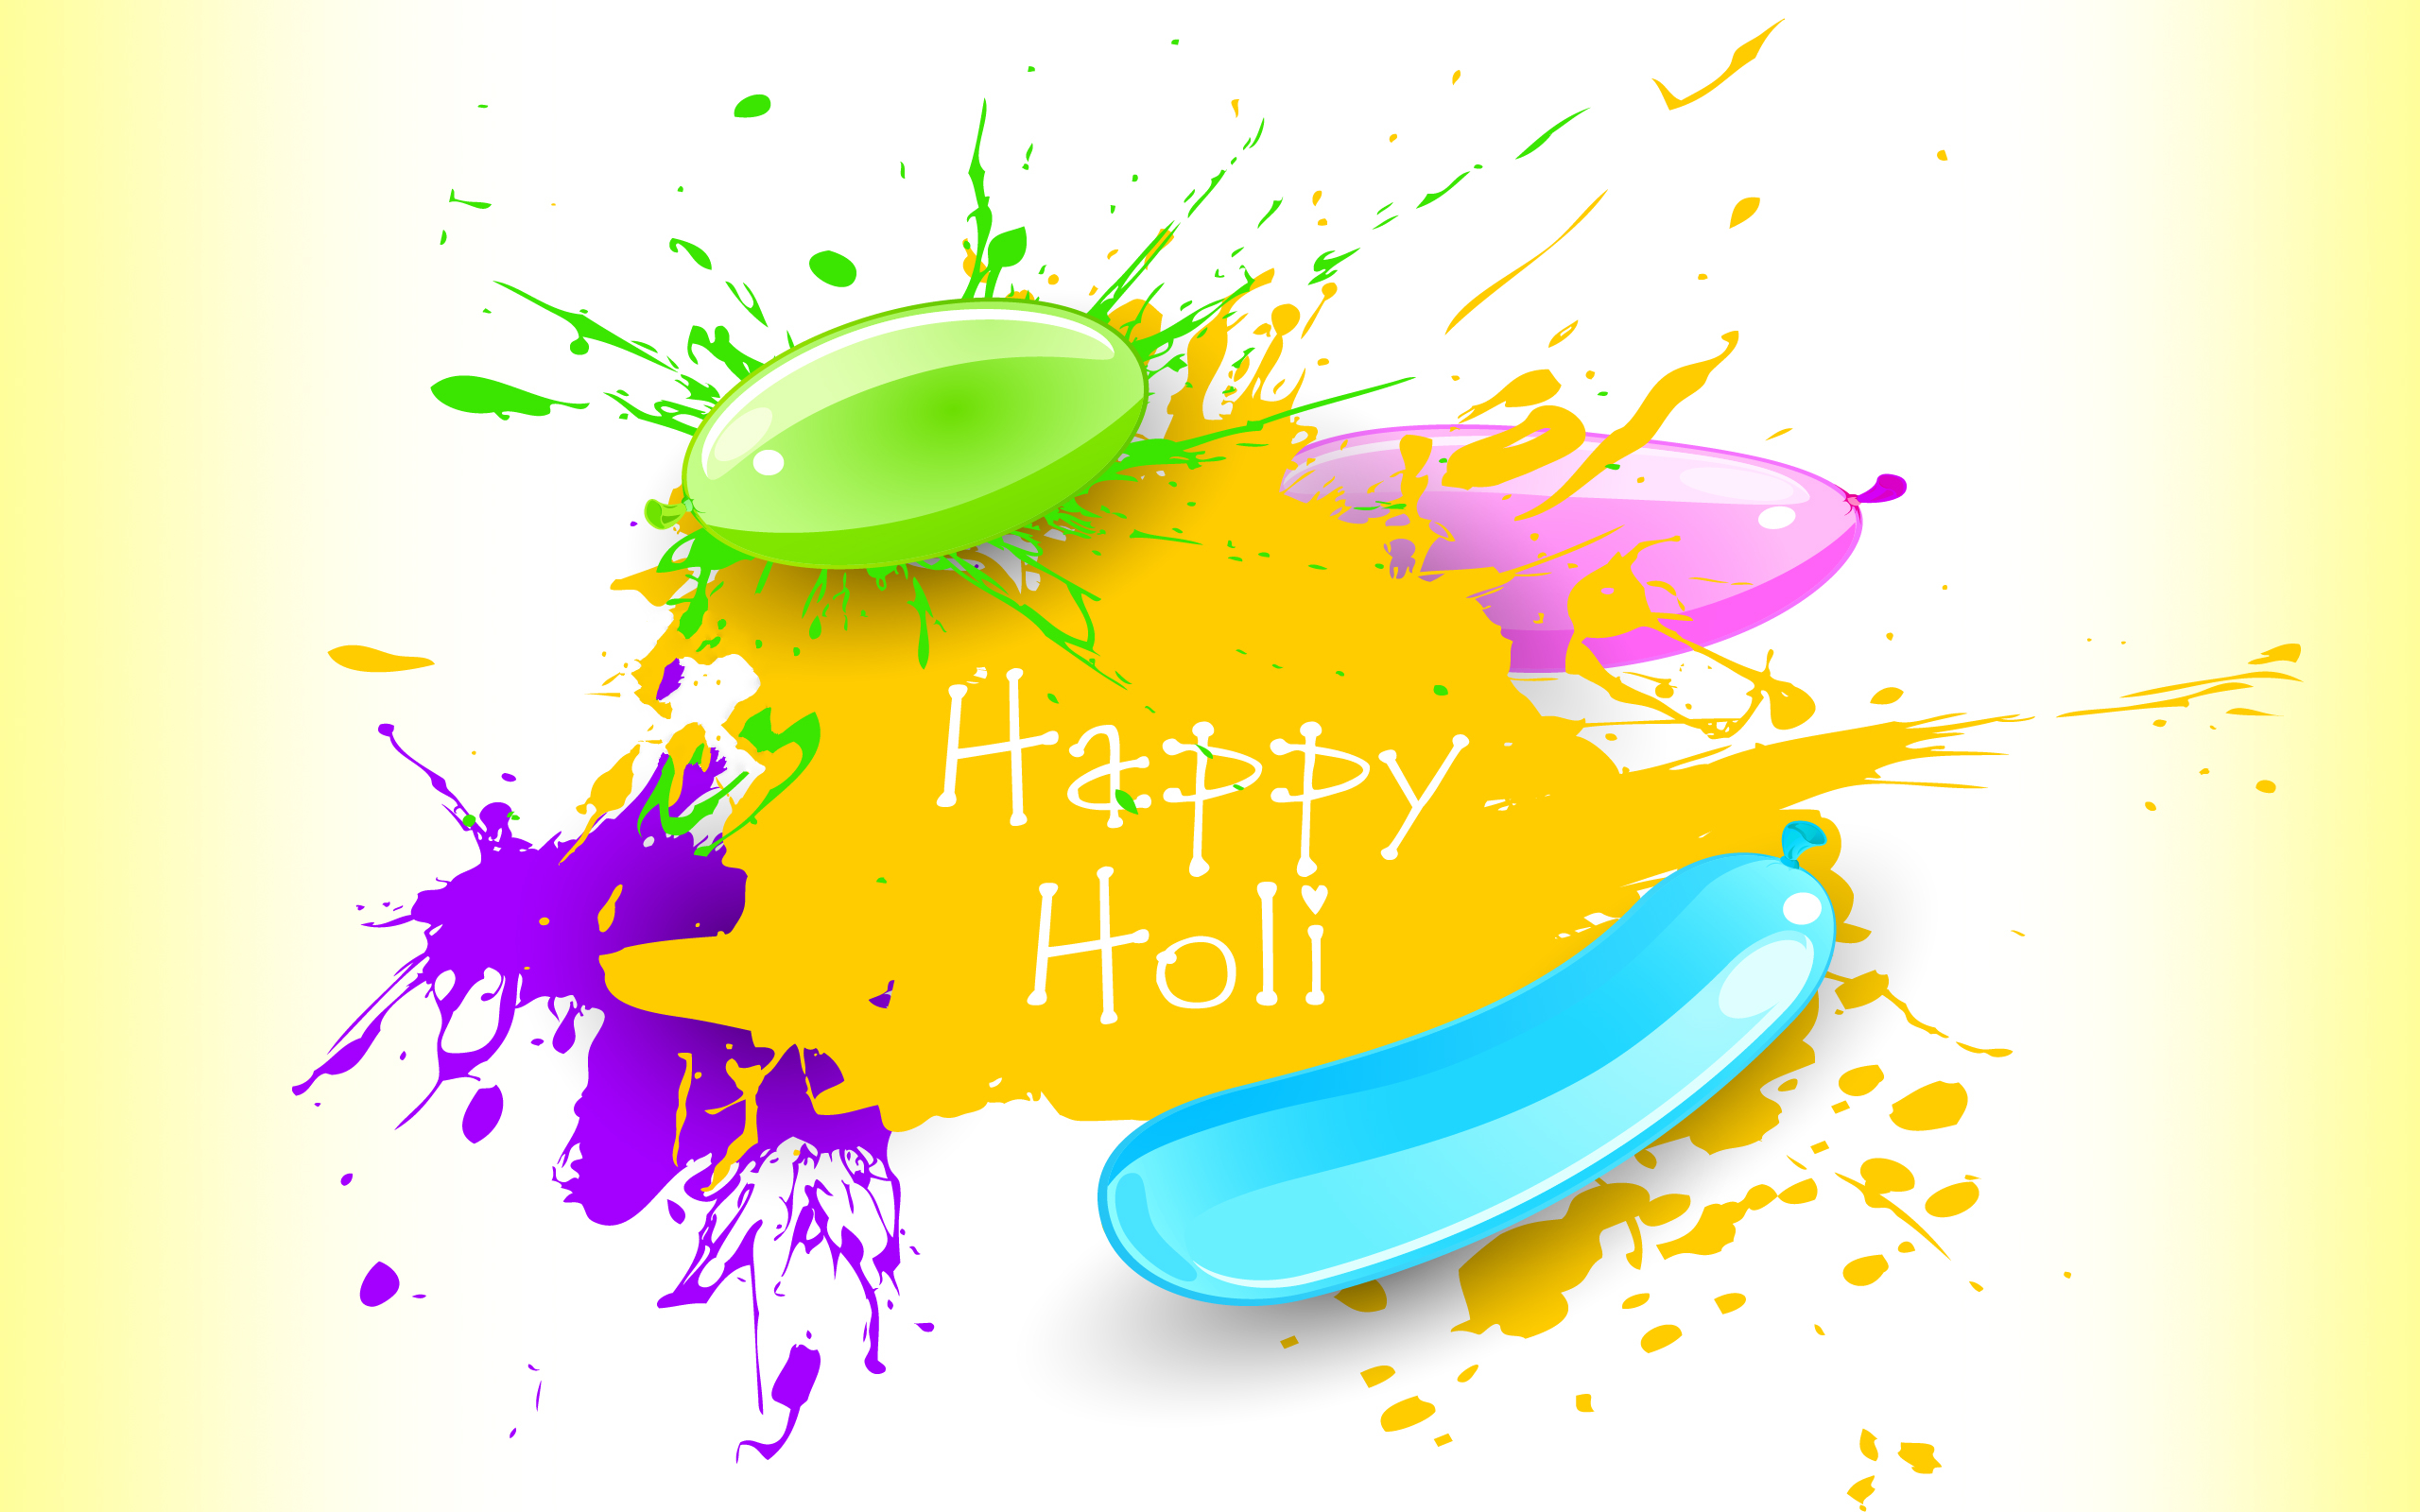 Holi HD Celebrations 4k Wallpapers Images Backgrounds Photos